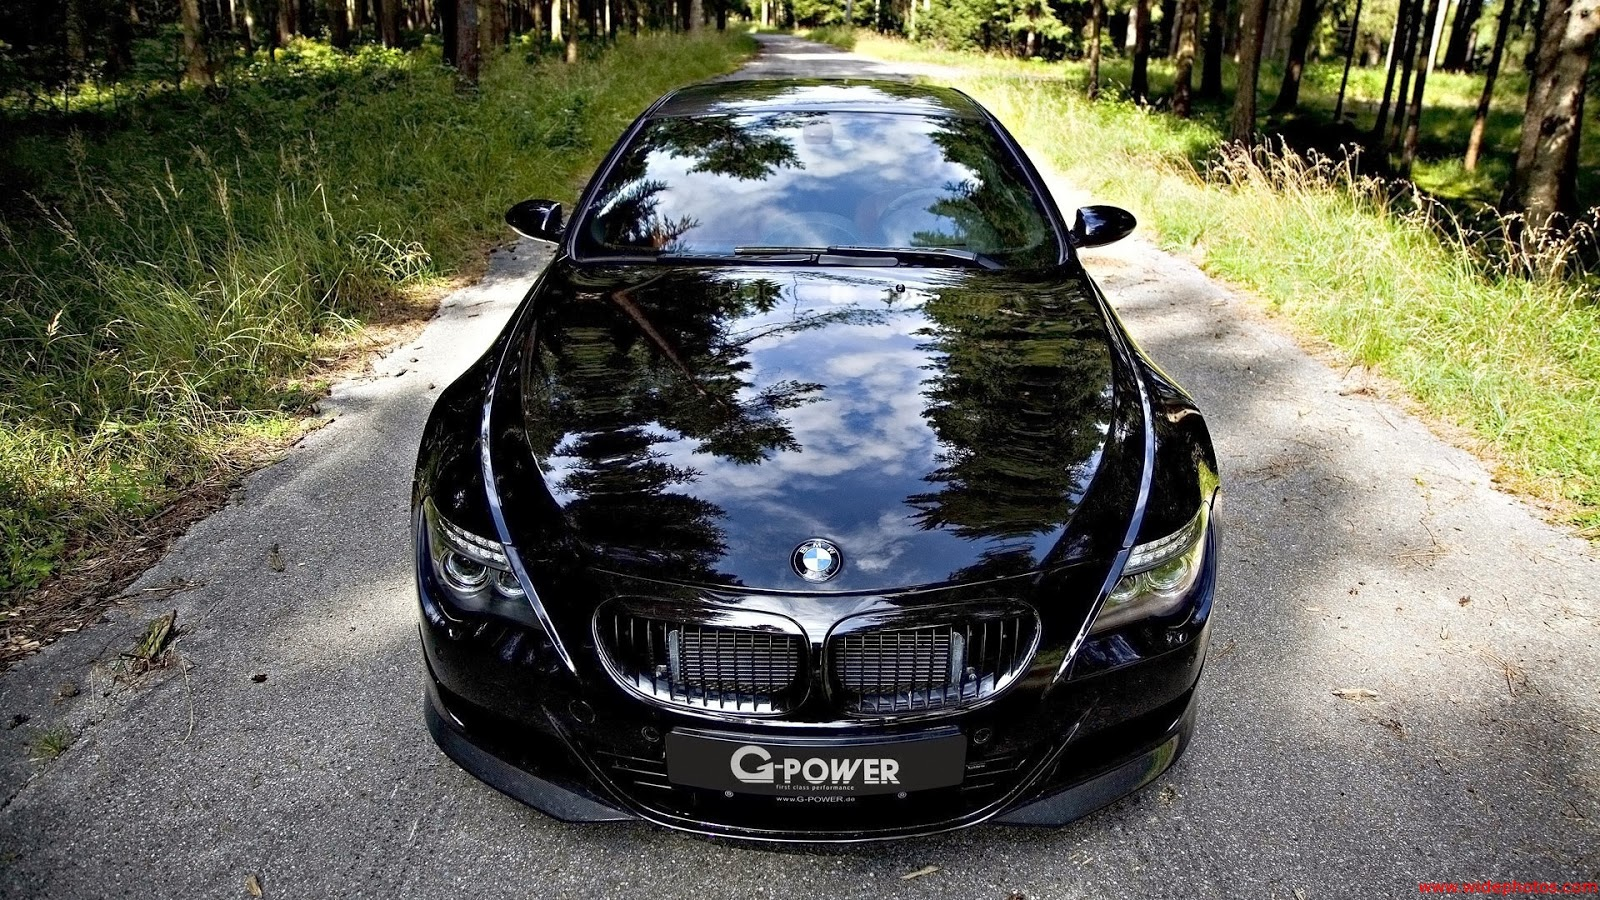 HD BMW Car Wallpapers 1080p - Mobile wallpapers